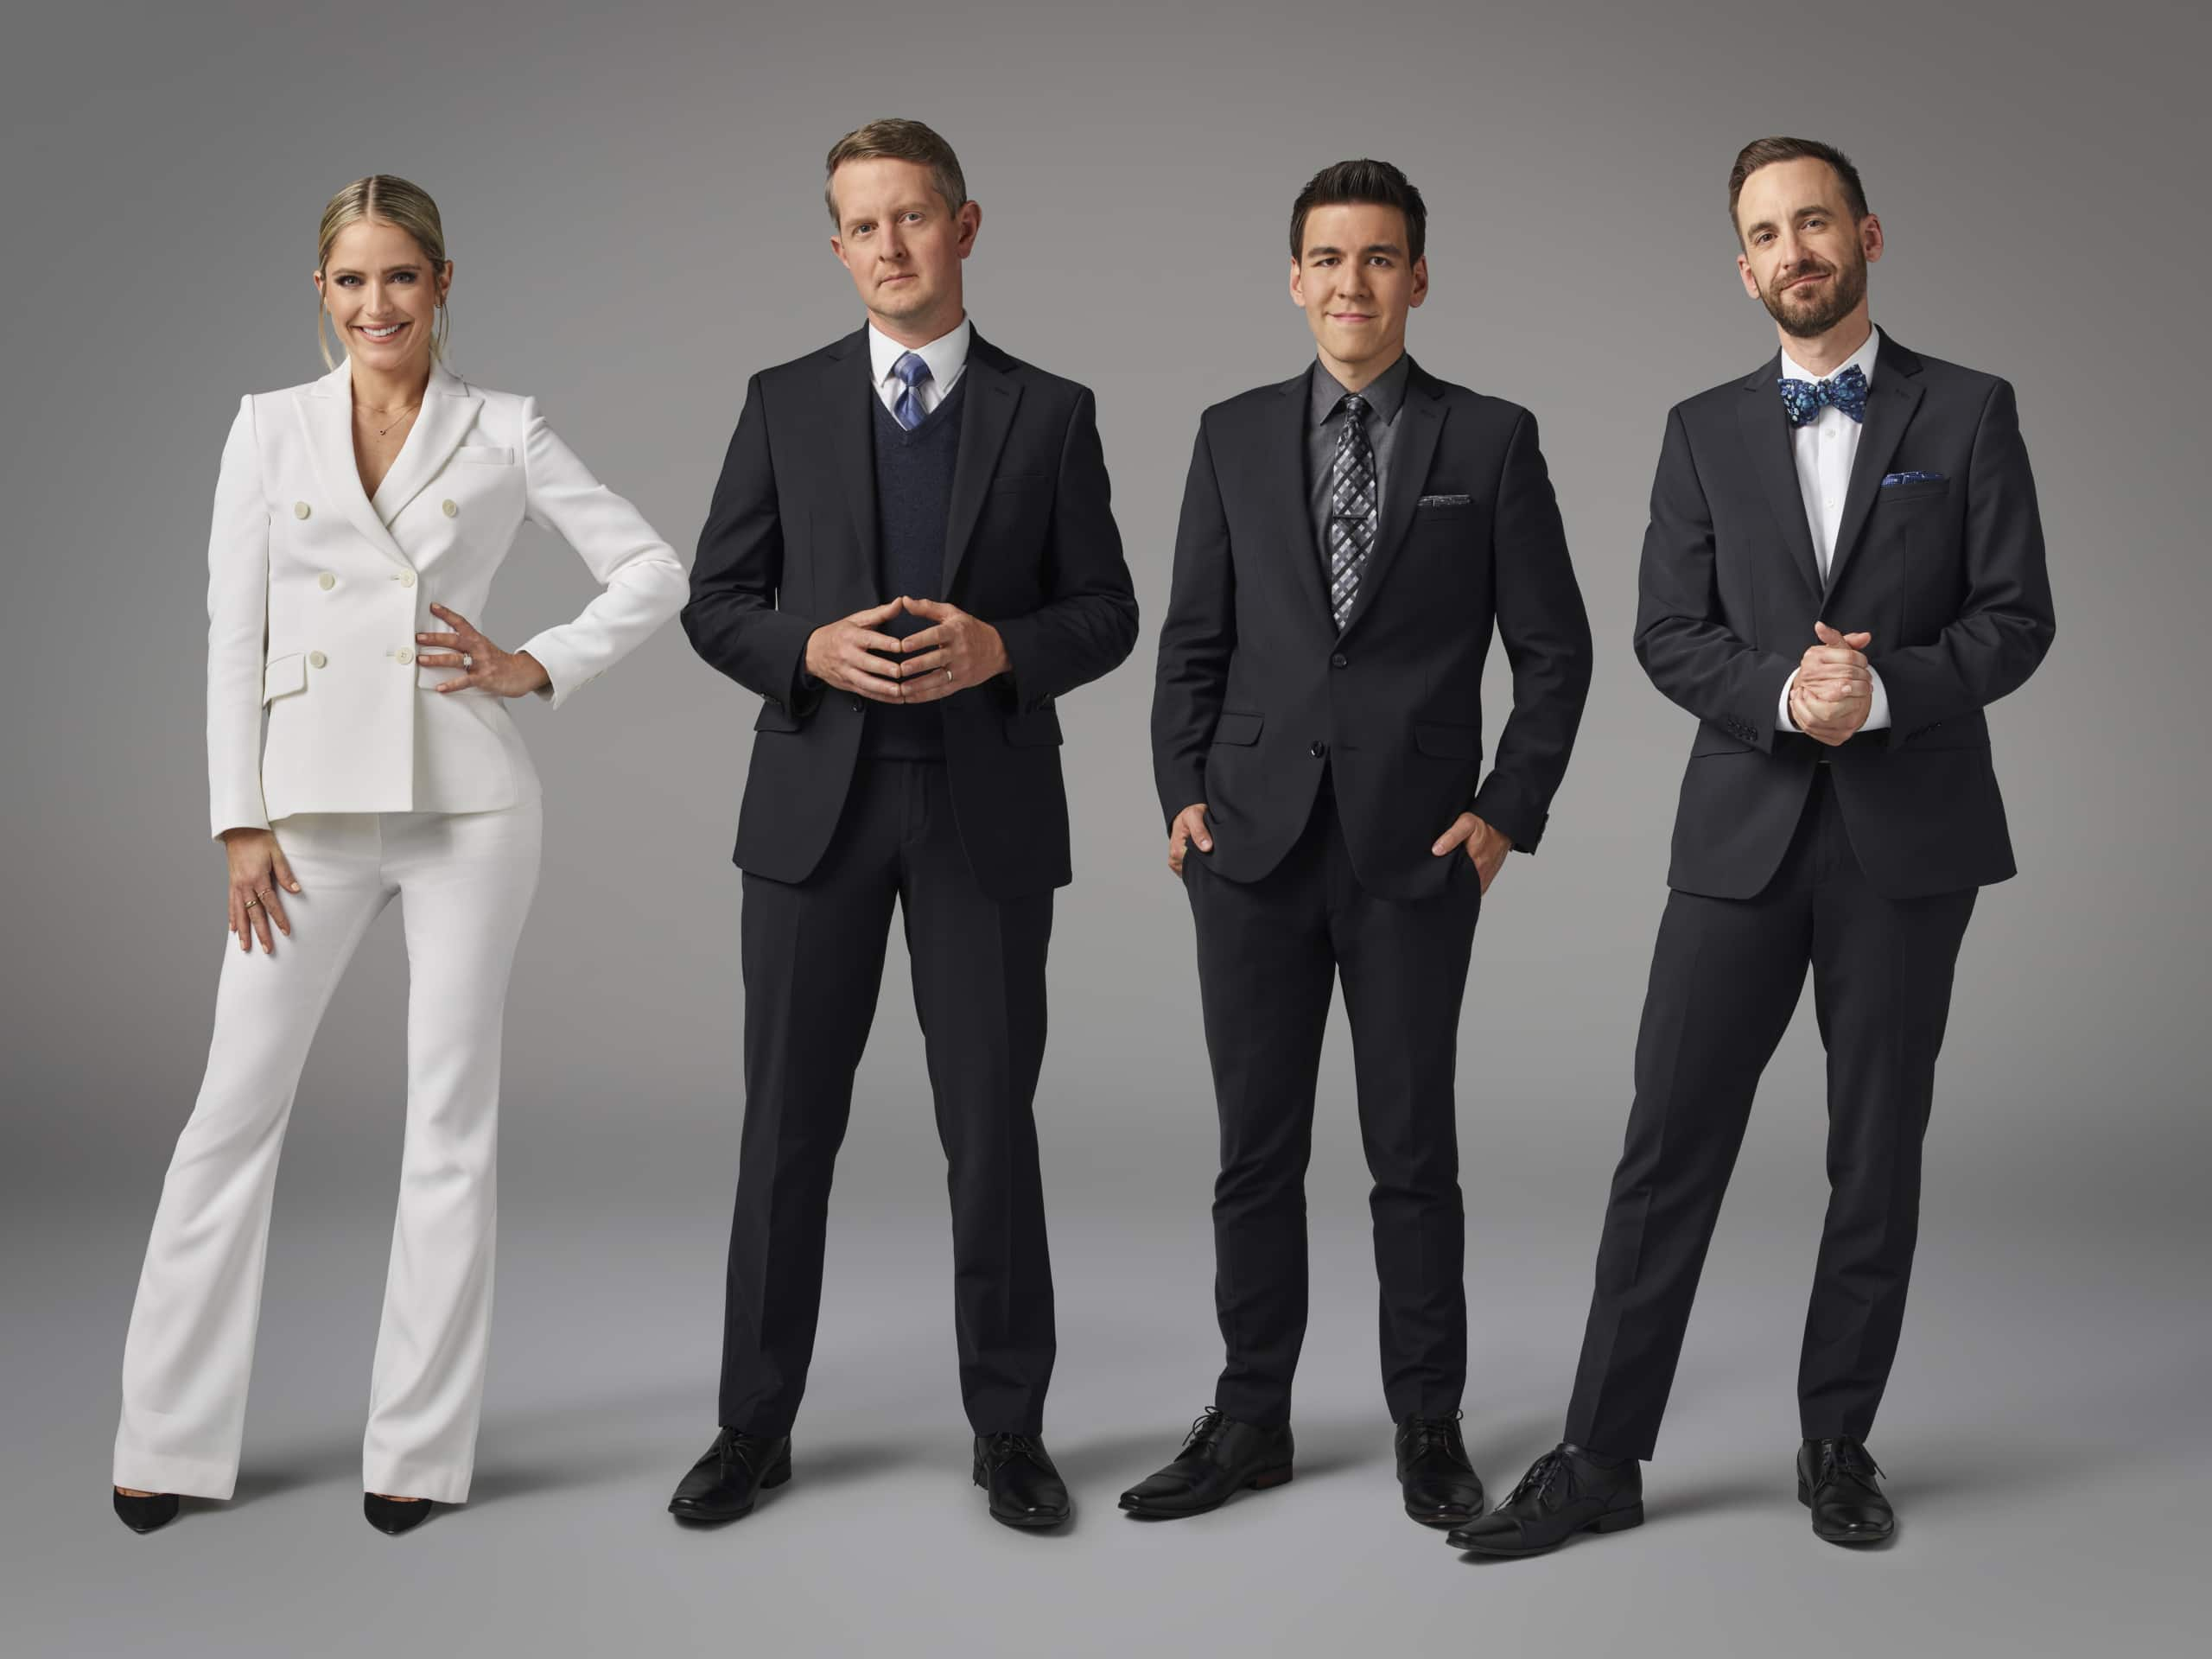 Fun Facts About The Chase On ABC